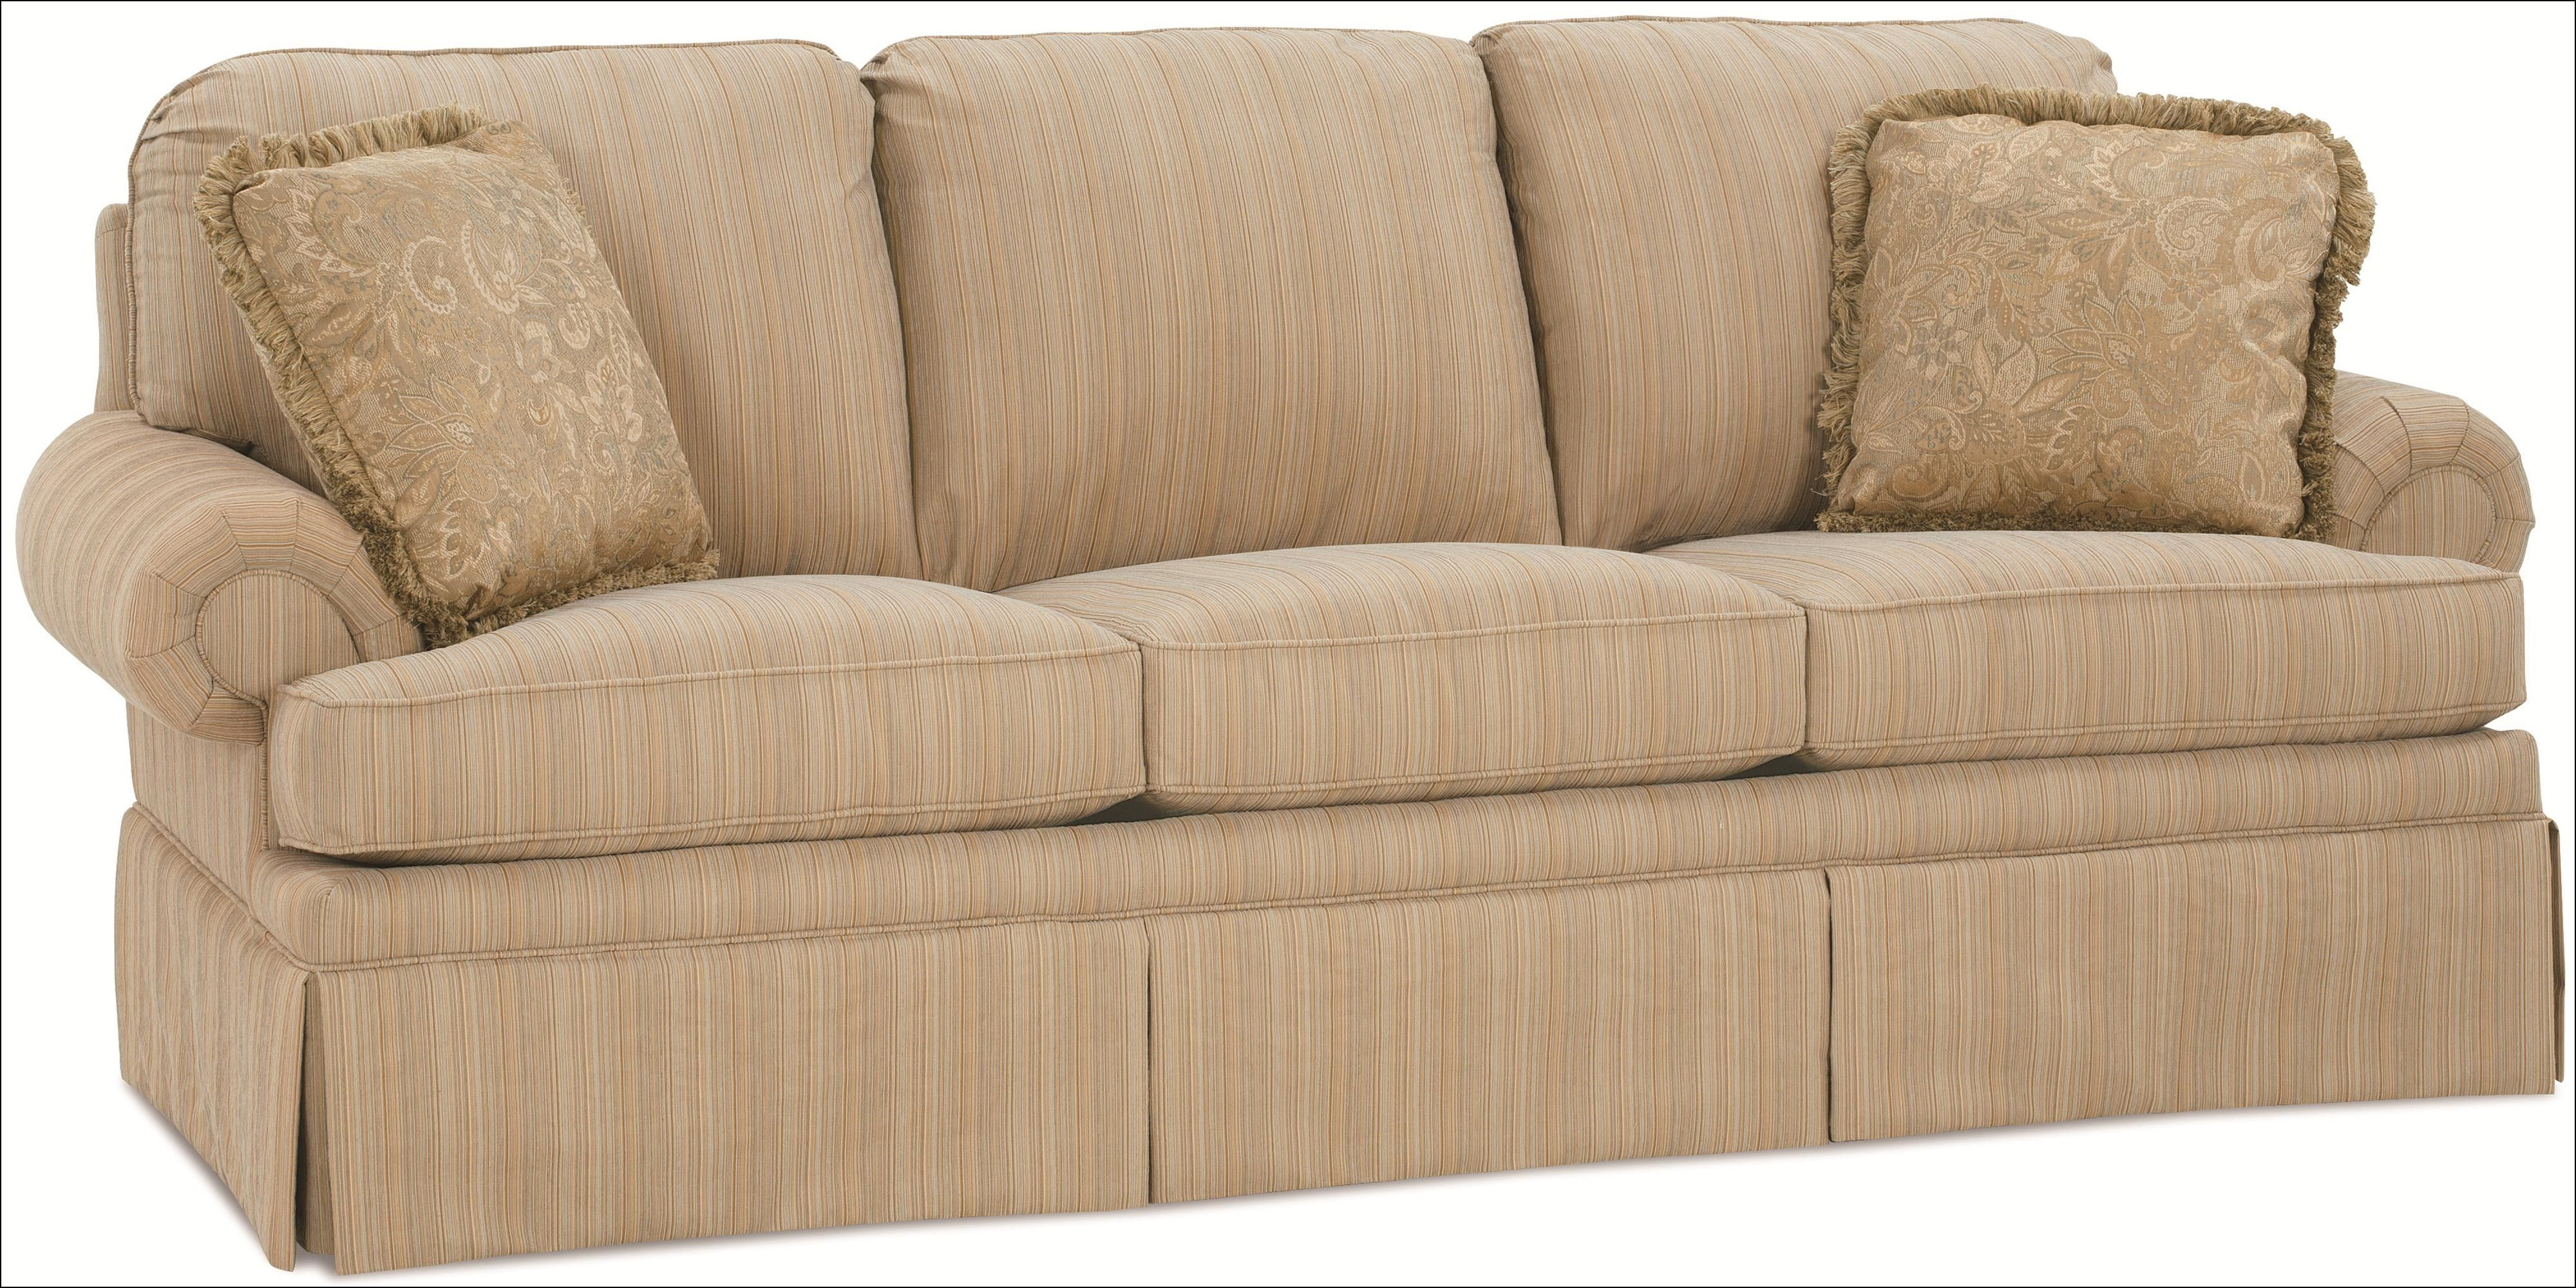 Clayton Marcus Sofa Prices Price